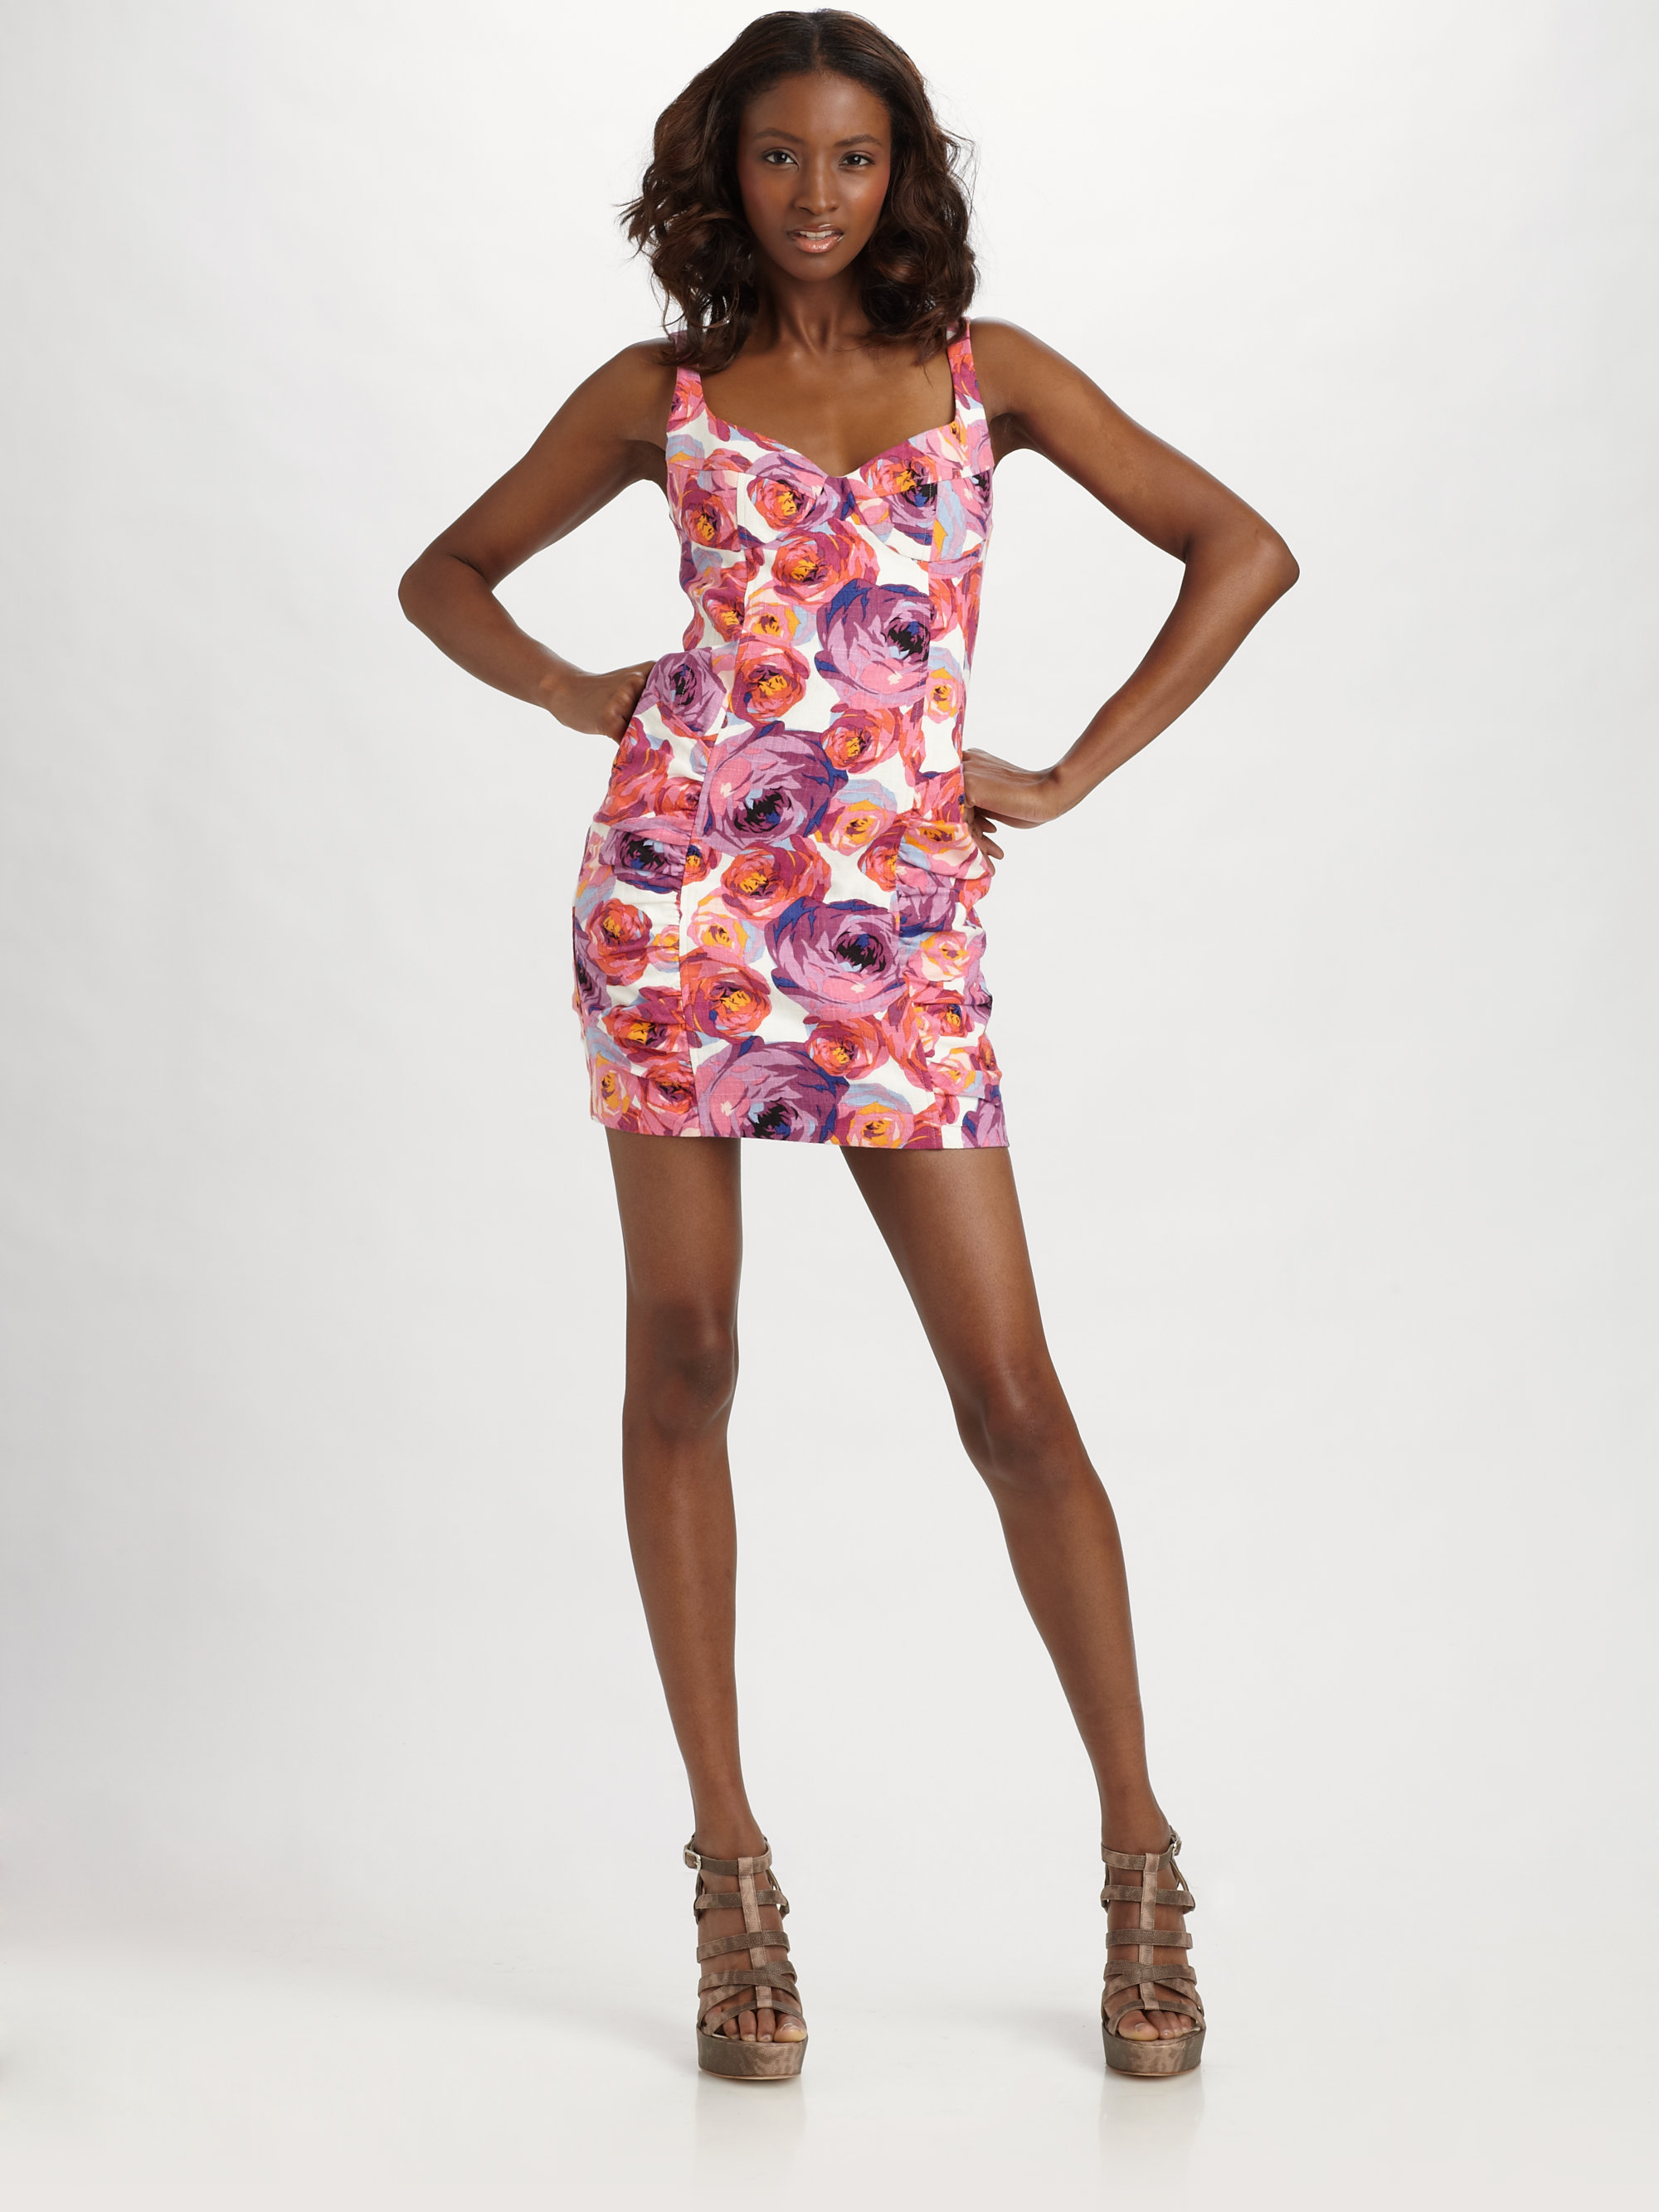 Nanette lepore Candy Girl Mini Dress in Pink